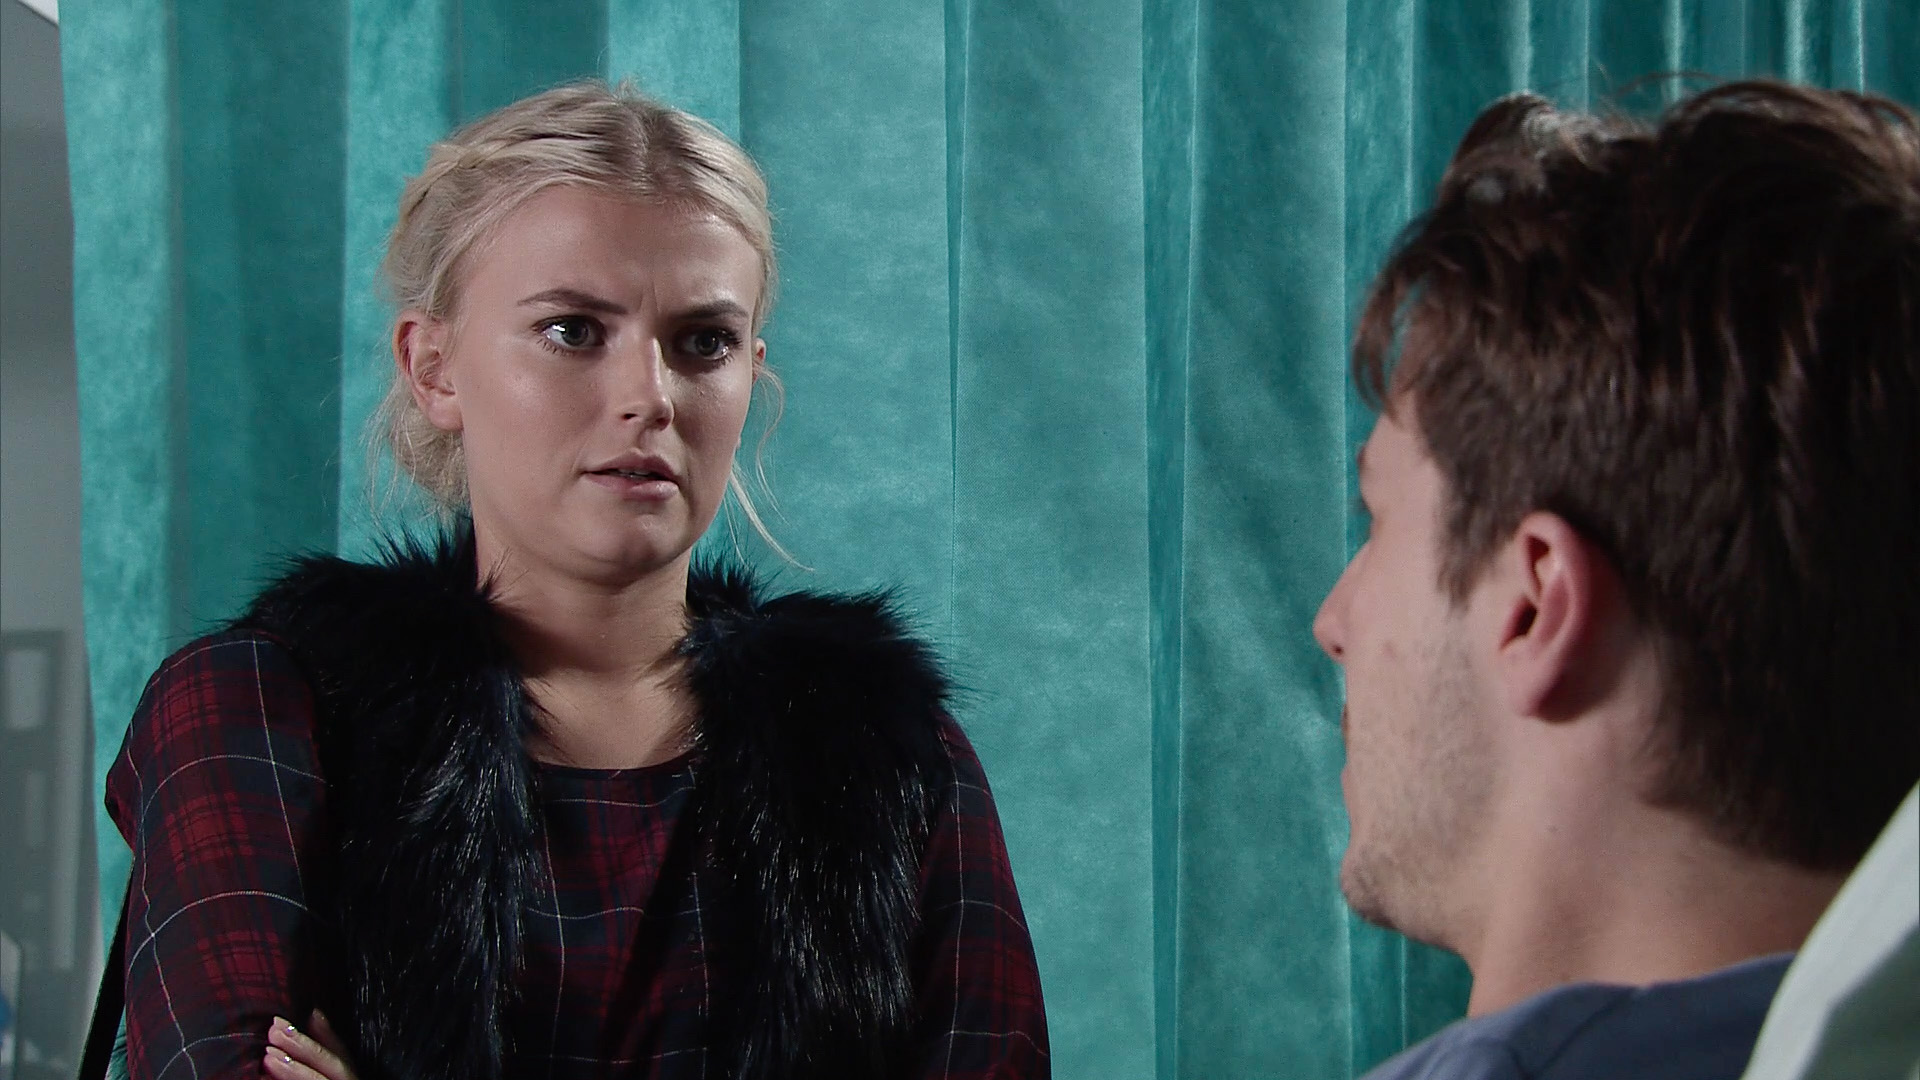 Coronation Street star Lucy Fallon has brilliant response to foot fetish messages